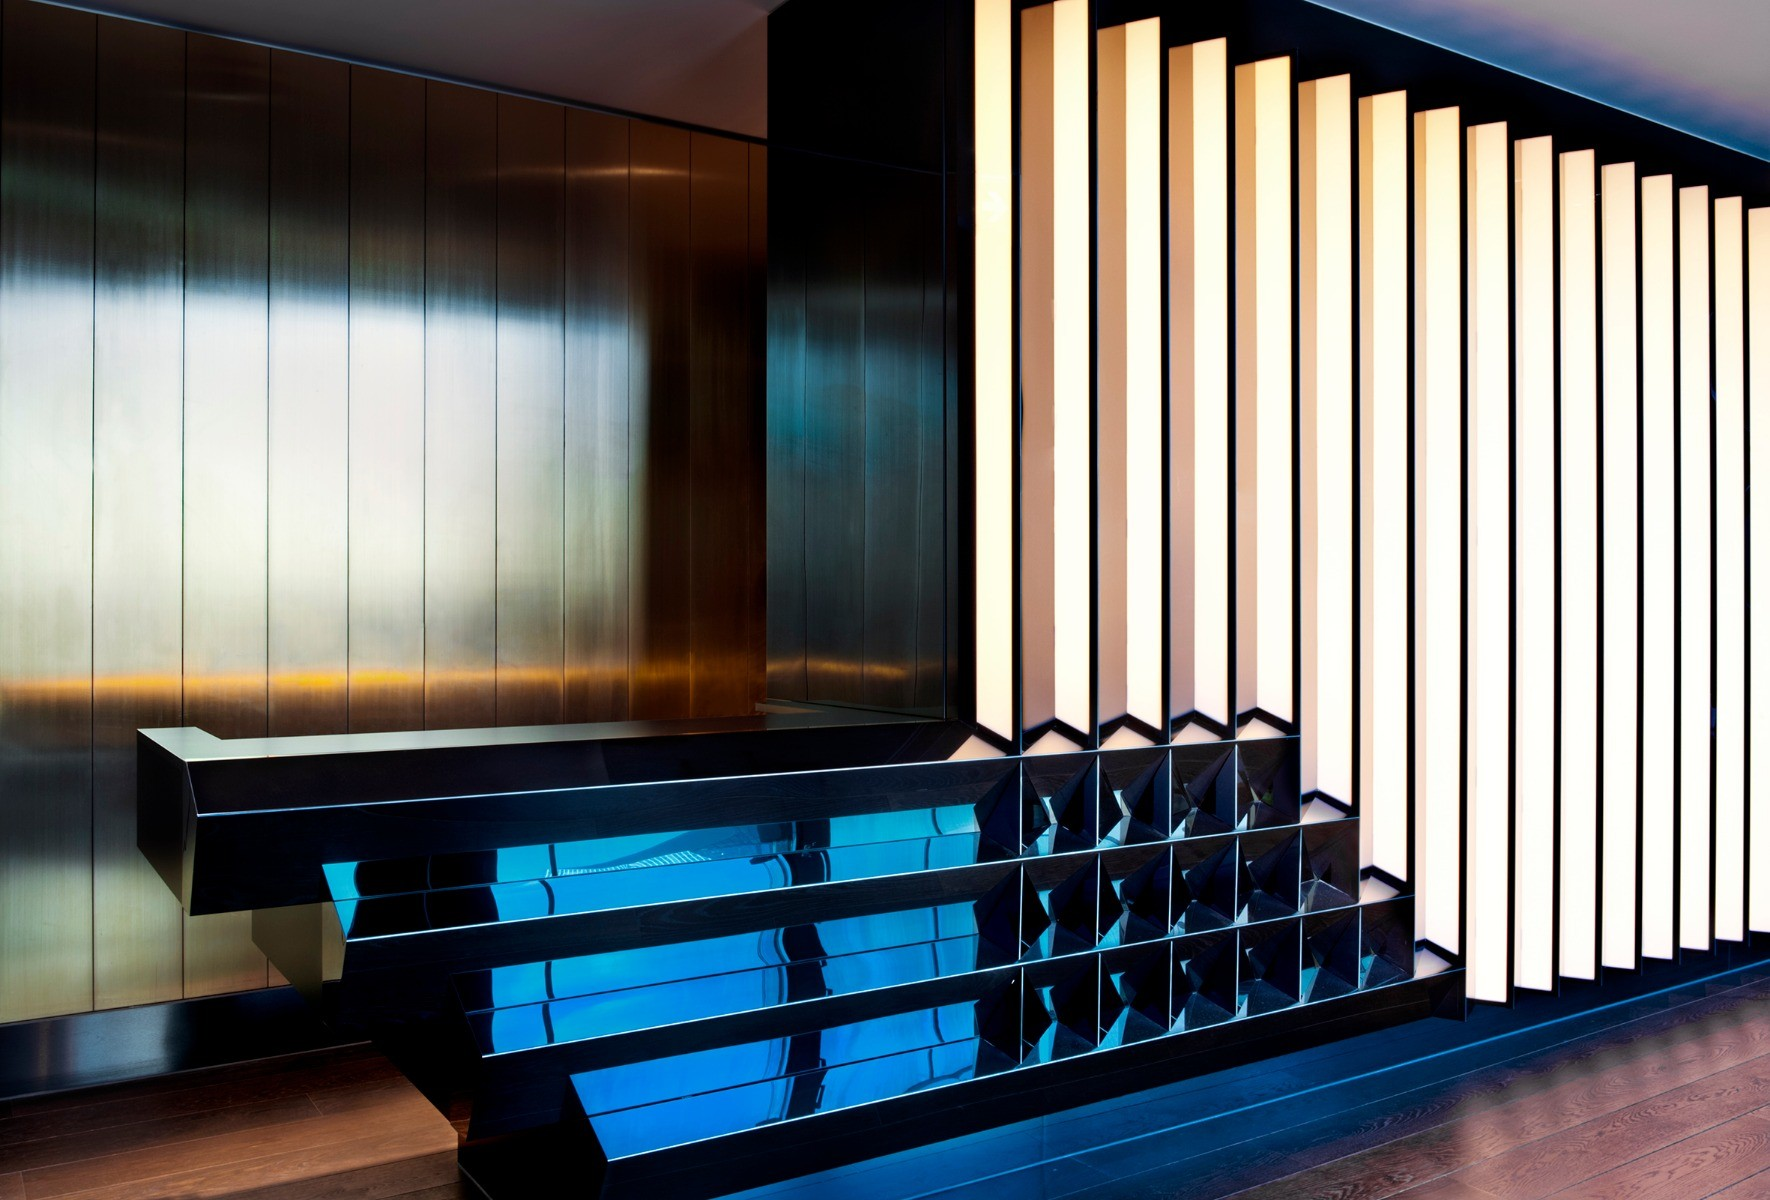 Detail of the bar at the Mondrian Sea Containers in London, interiors by Tom Dixon's Design Research Studio.